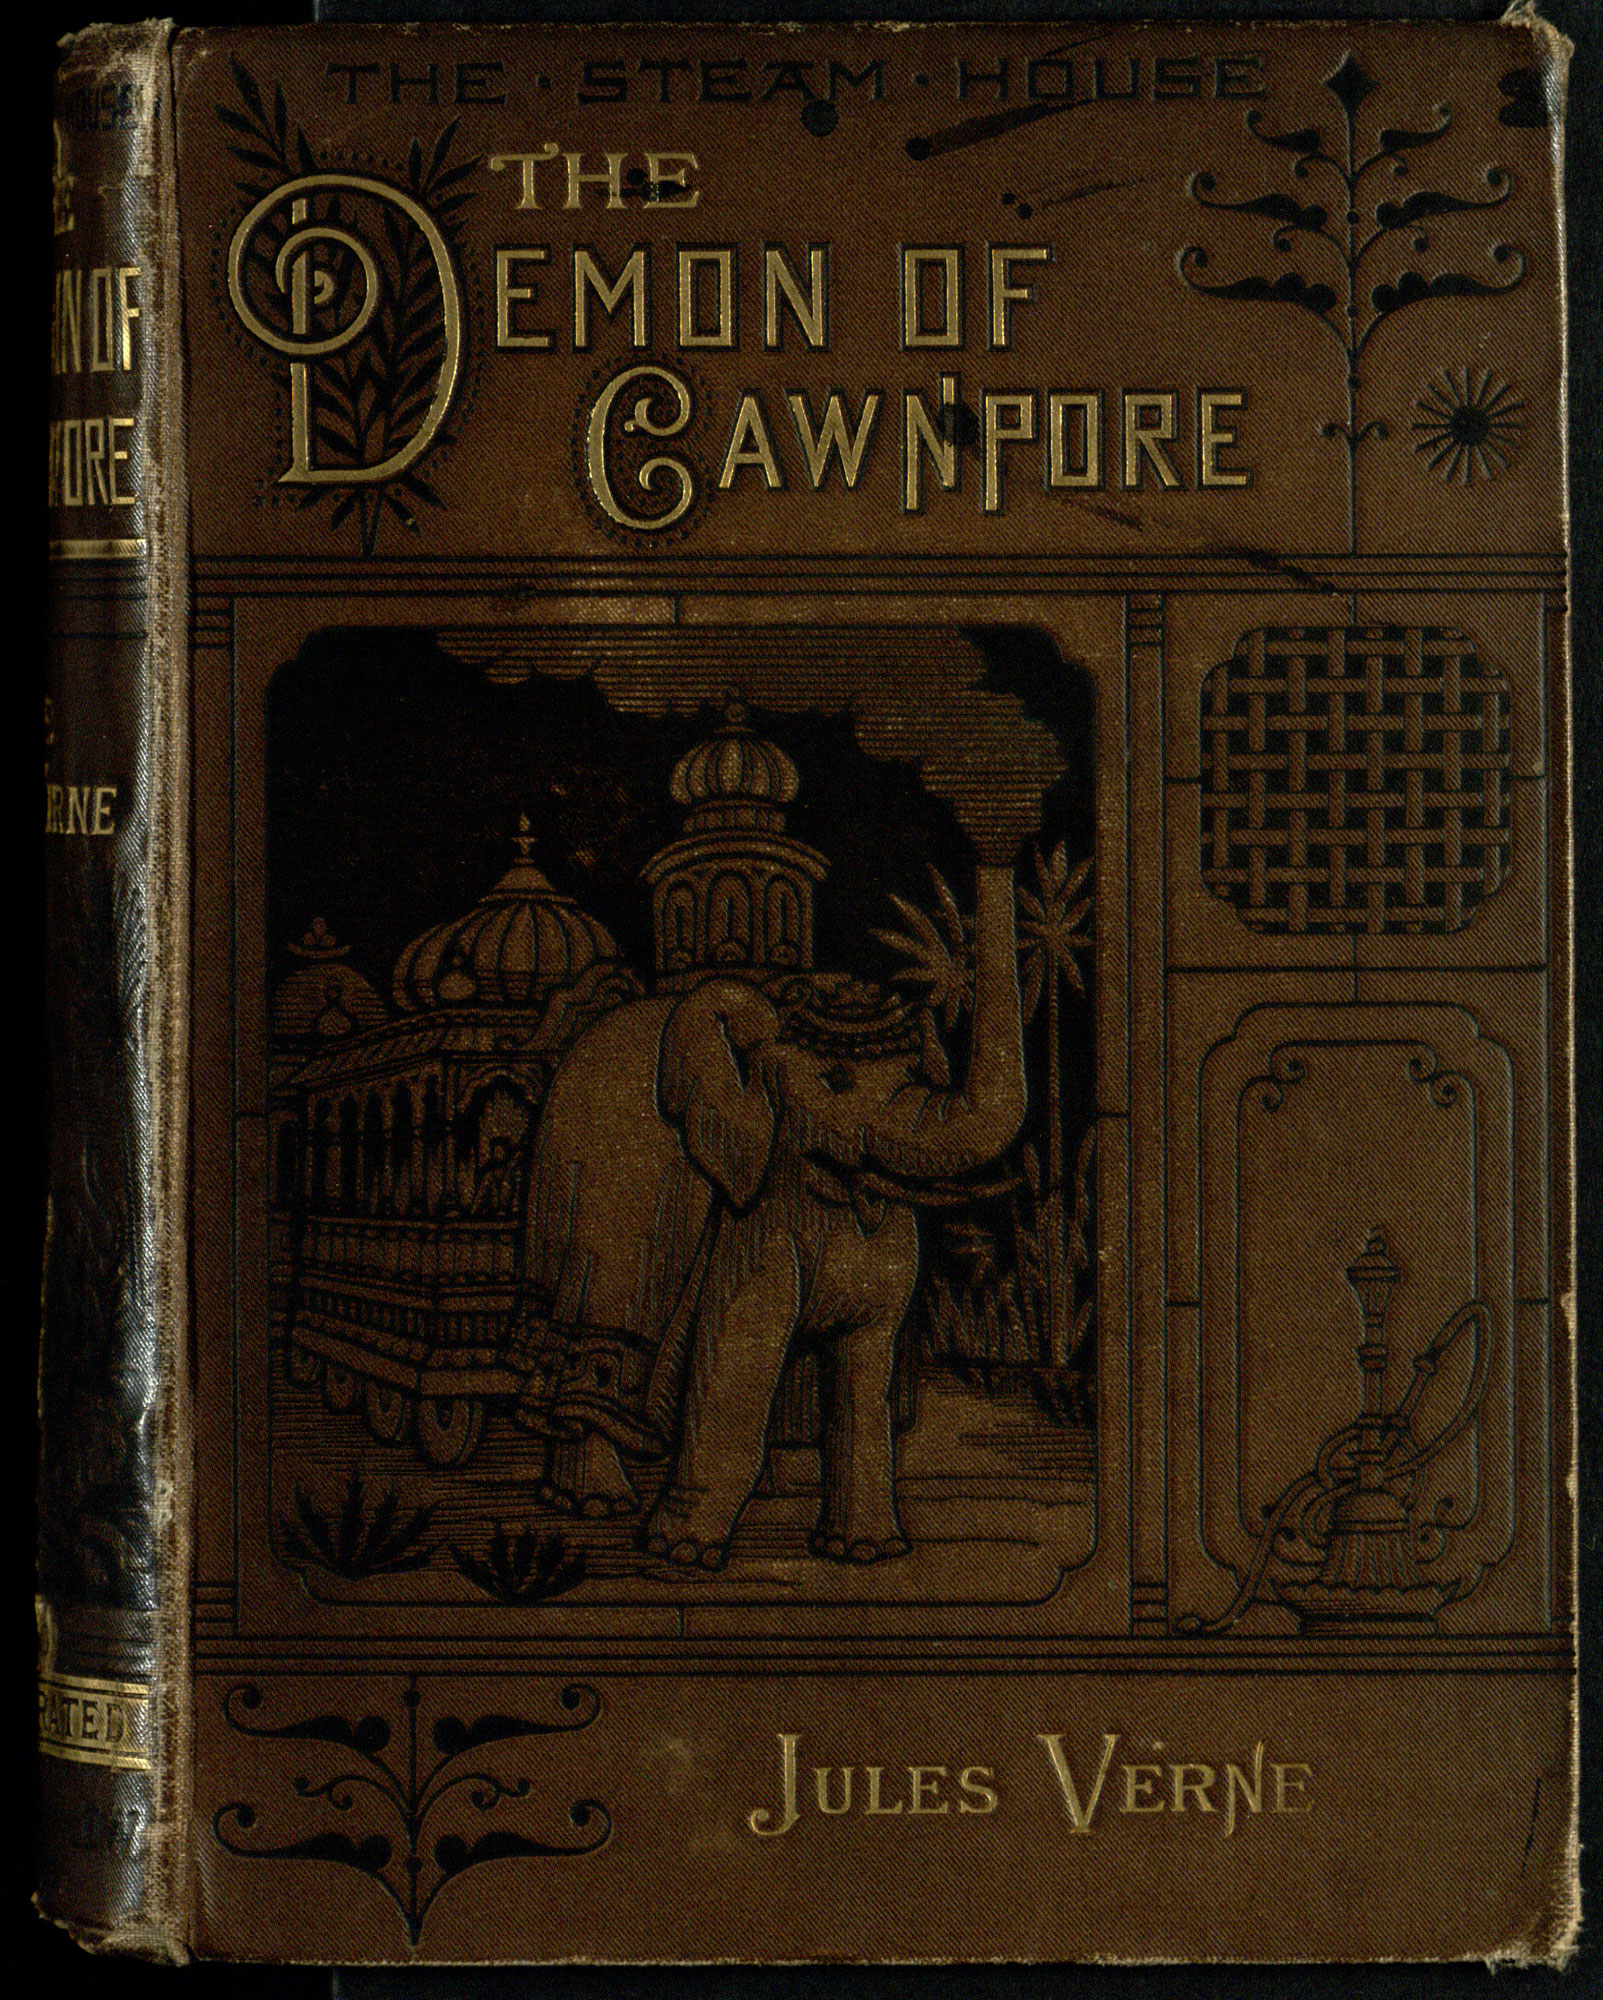 Science fiction novel, The Steam House, Part I: The Demon of Cawnpore